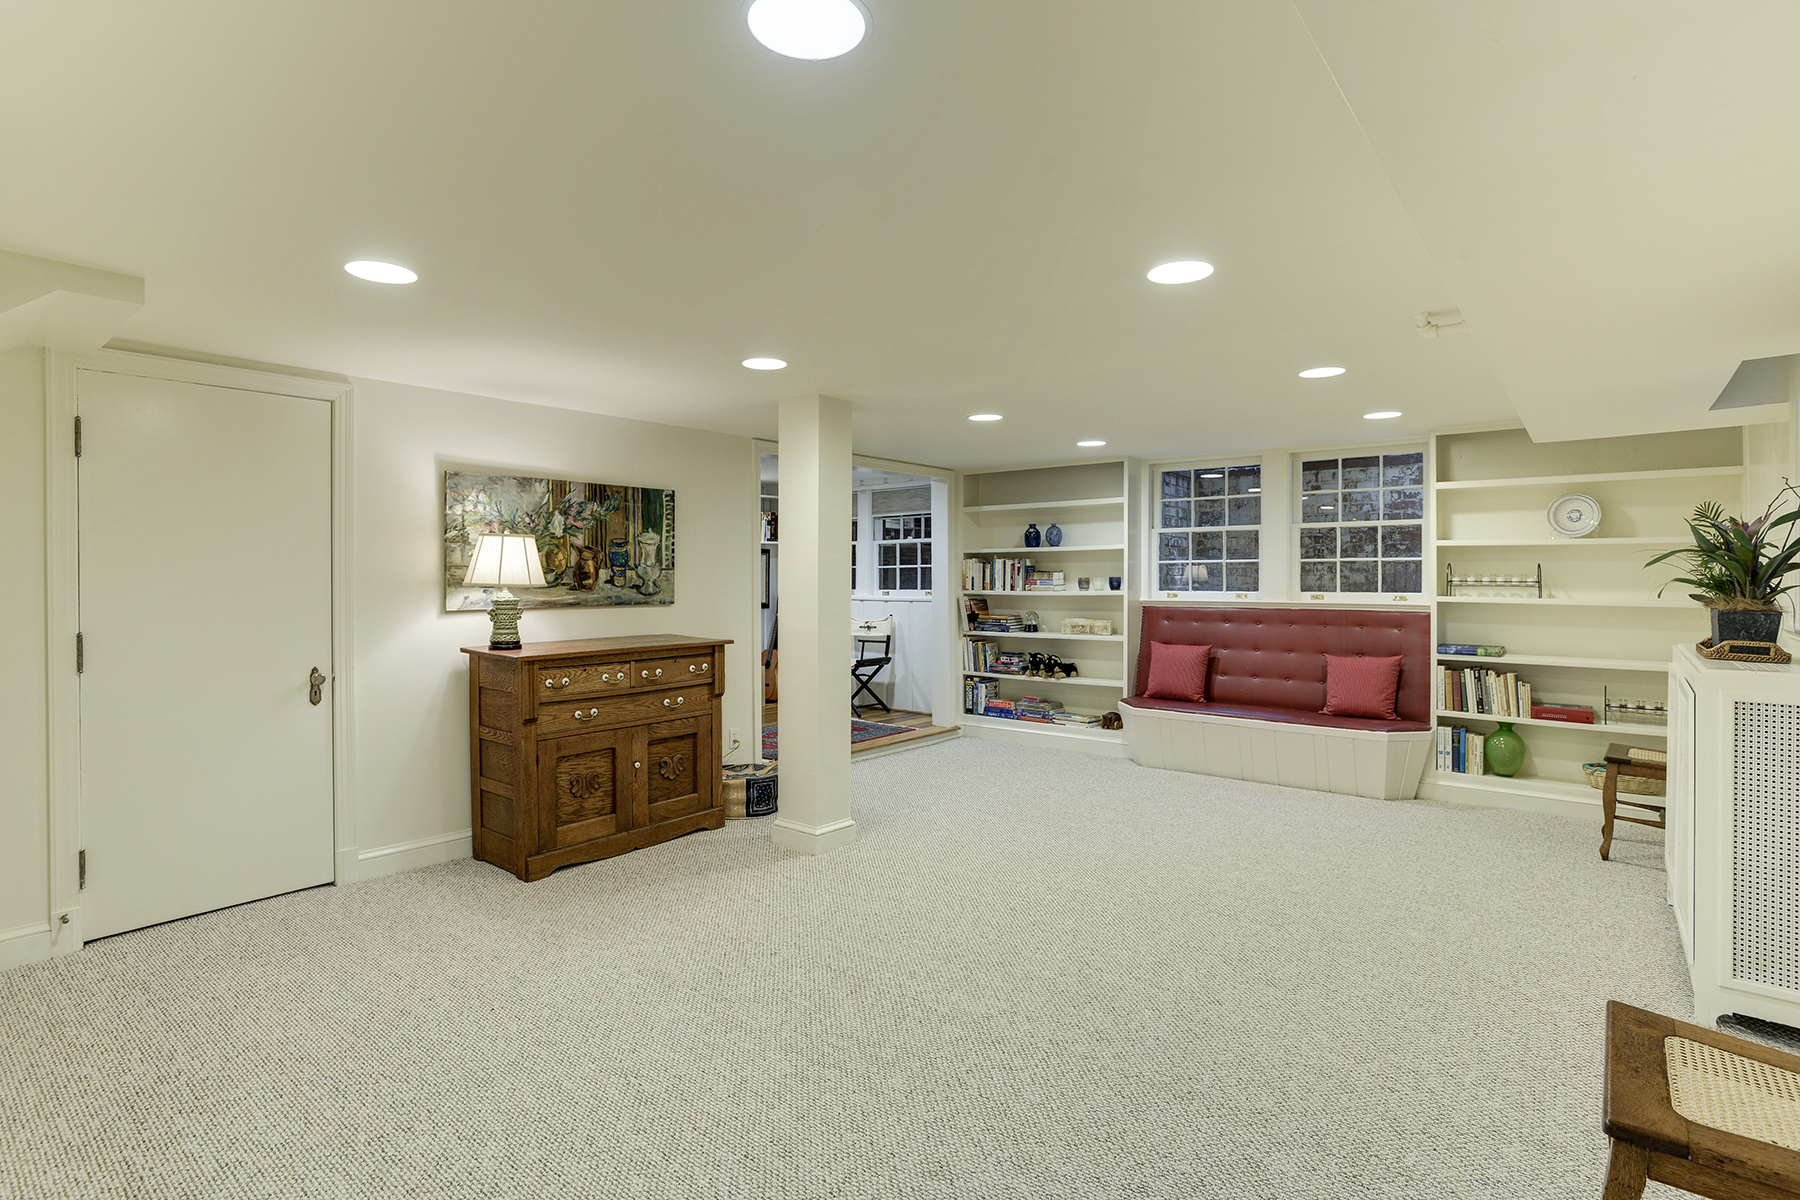 Additional photo for property listing at 4530 Dexter Street Nw, Washington  Washington, District Of Columbia 20007 United States